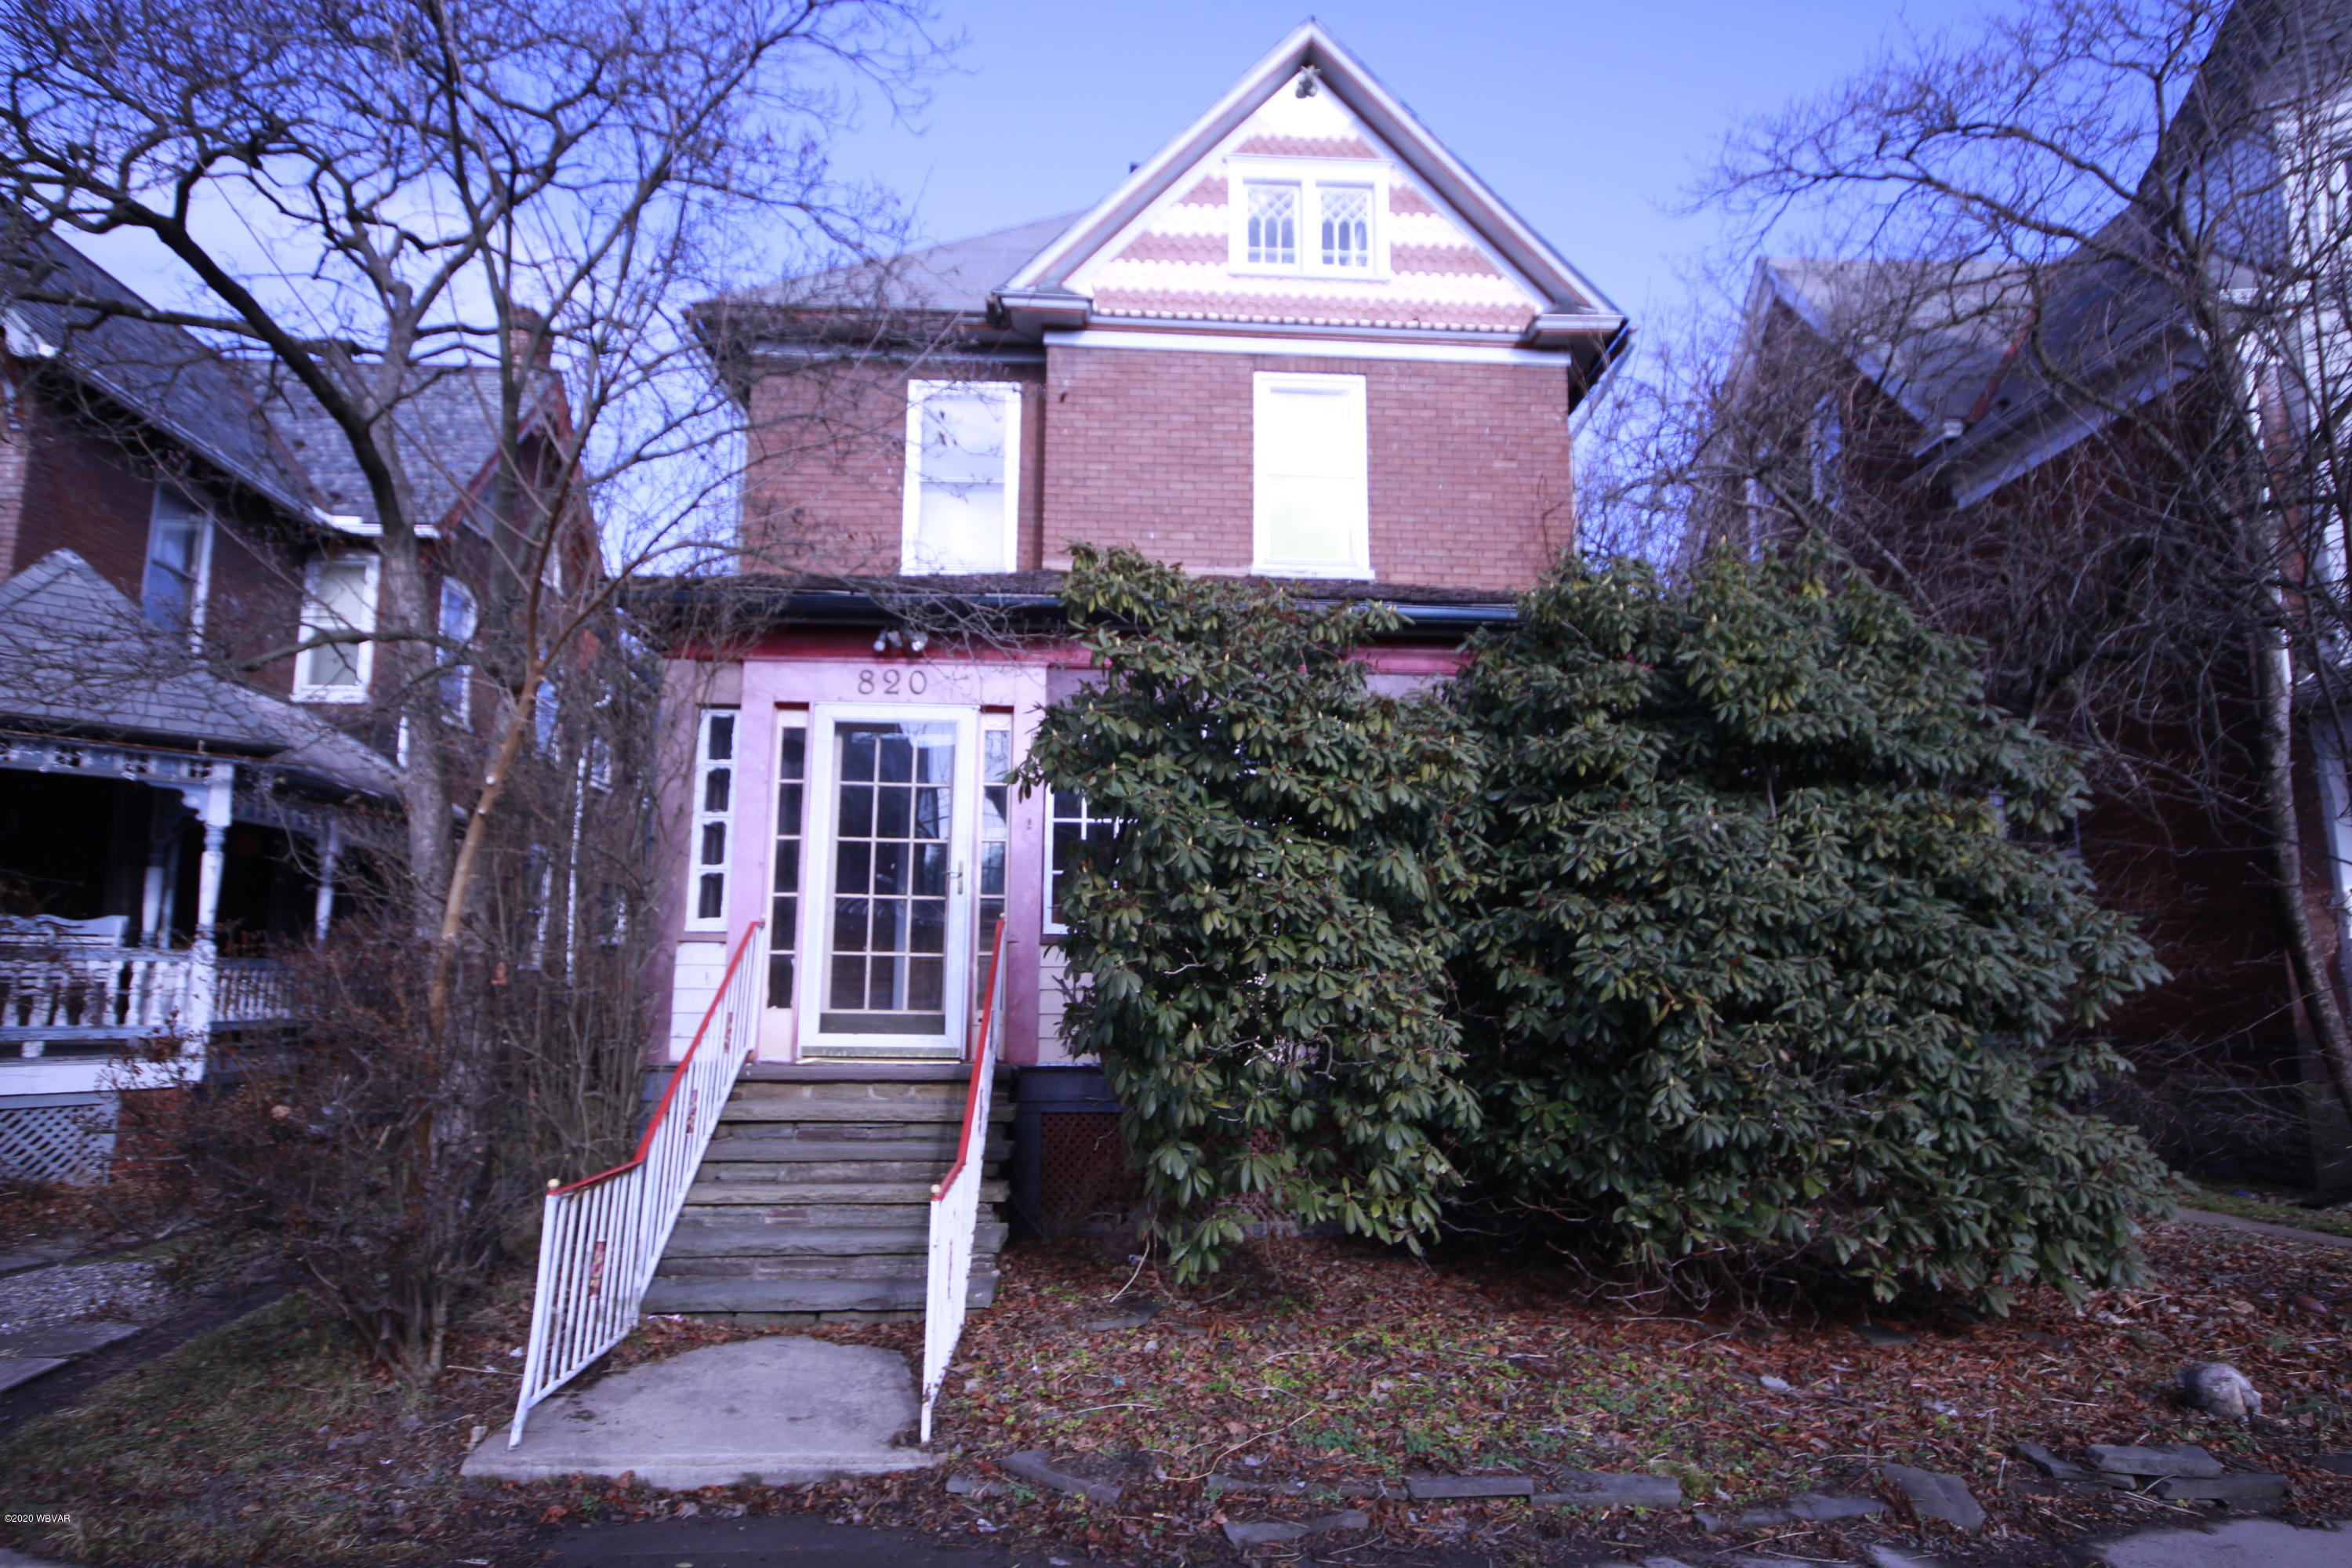 820 PARK PLACE,Williamsport,PA 17701,3 Bedrooms Bedrooms,1.25 BathroomsBathrooms,Residential,PARK,WB-89416